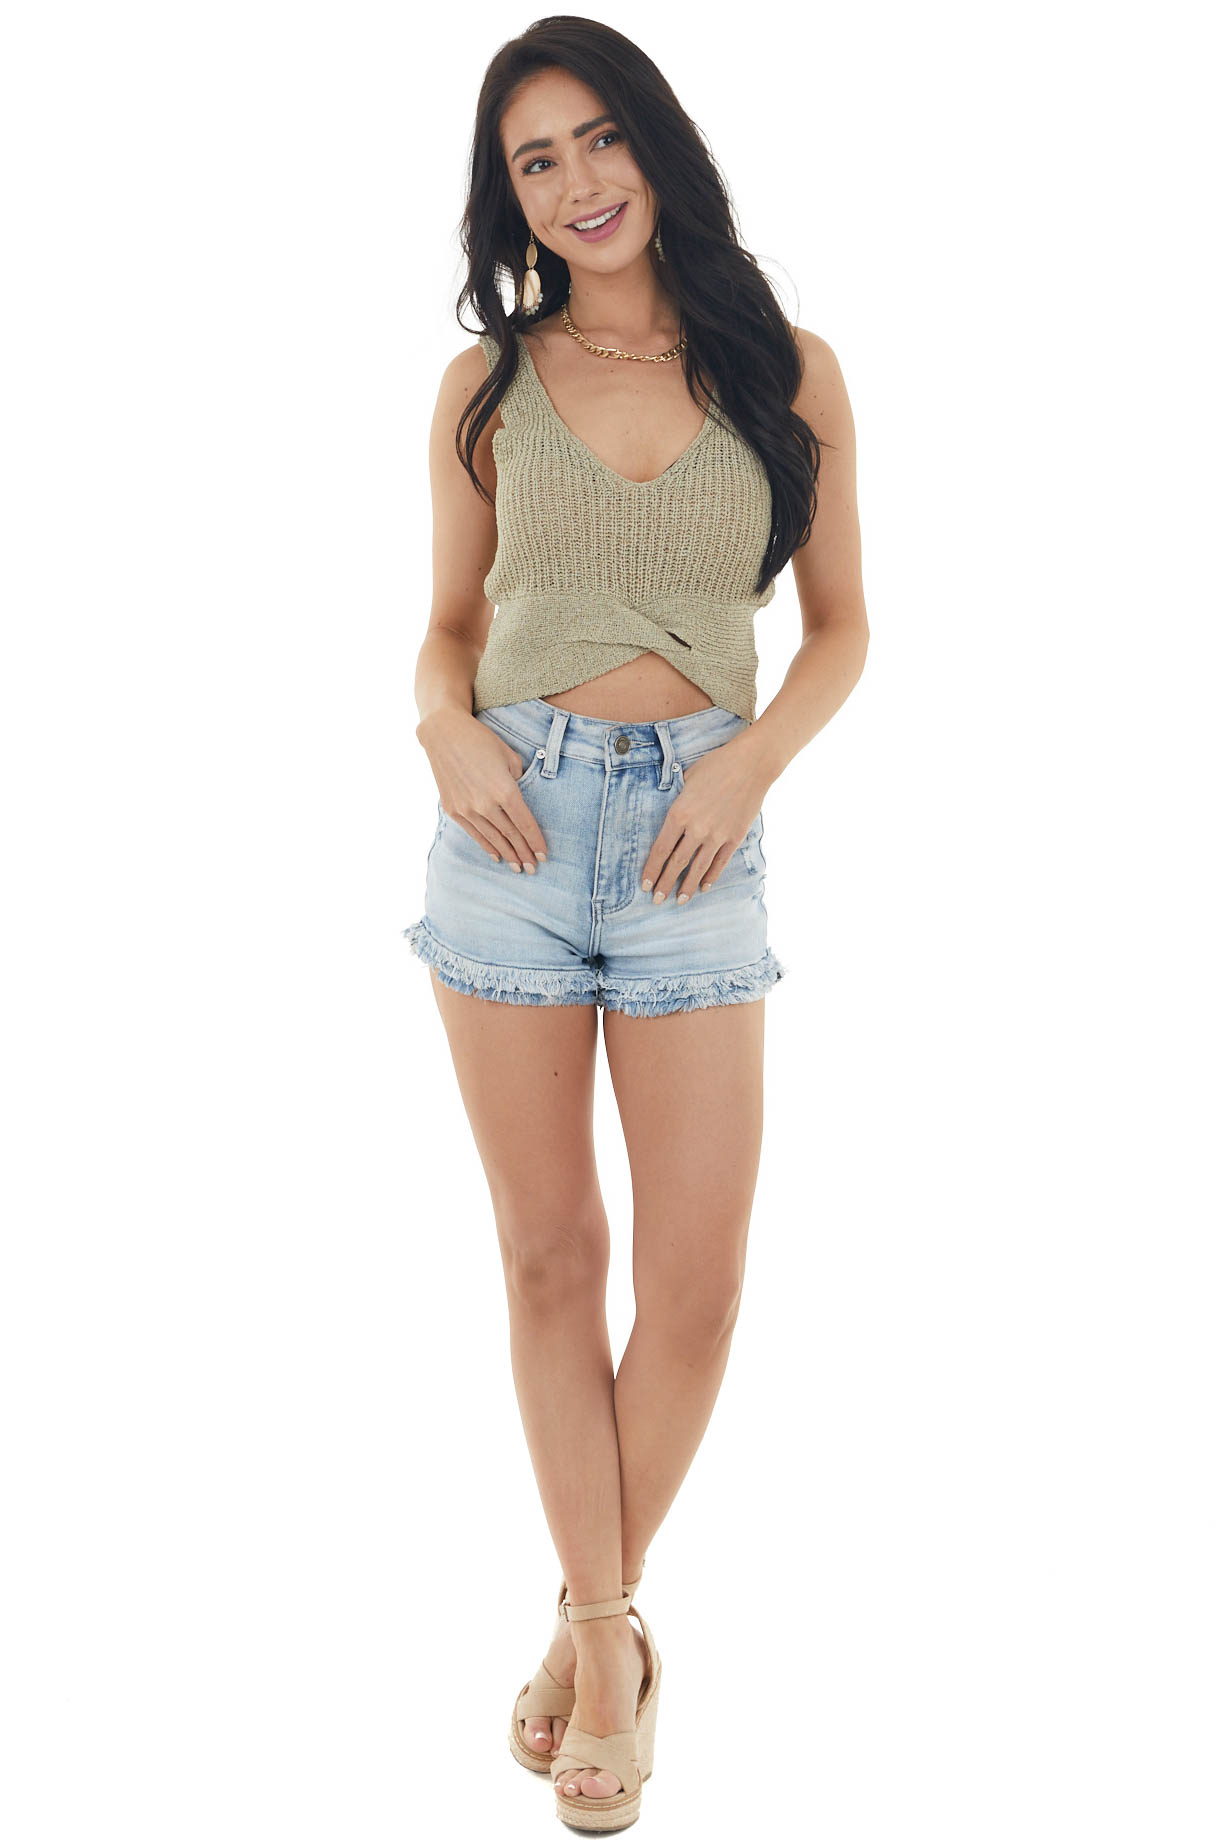 Dusty Green Sleeveless Knit Crop Top with Front Twist Detail